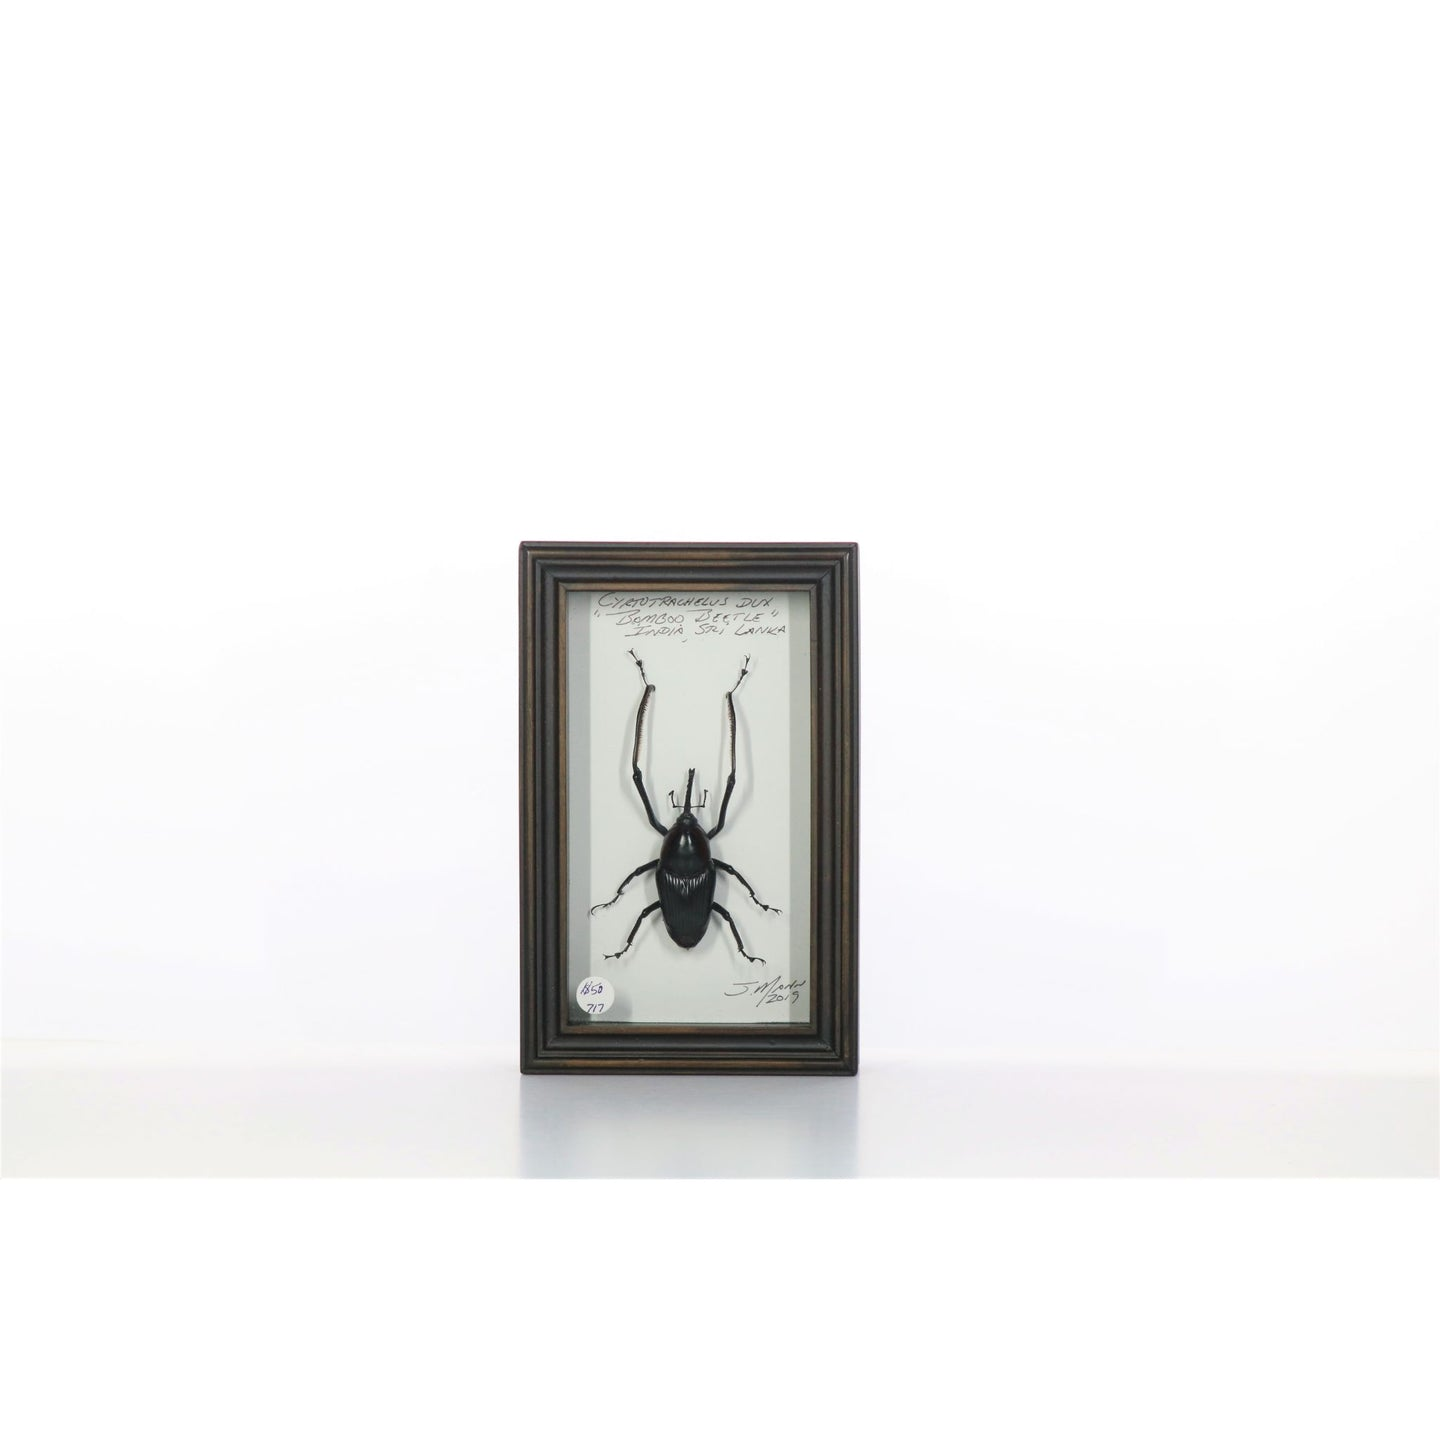 Bamboo Beetle 4x7 Dark Brown #717 Framed Art - Insecta Etcetera